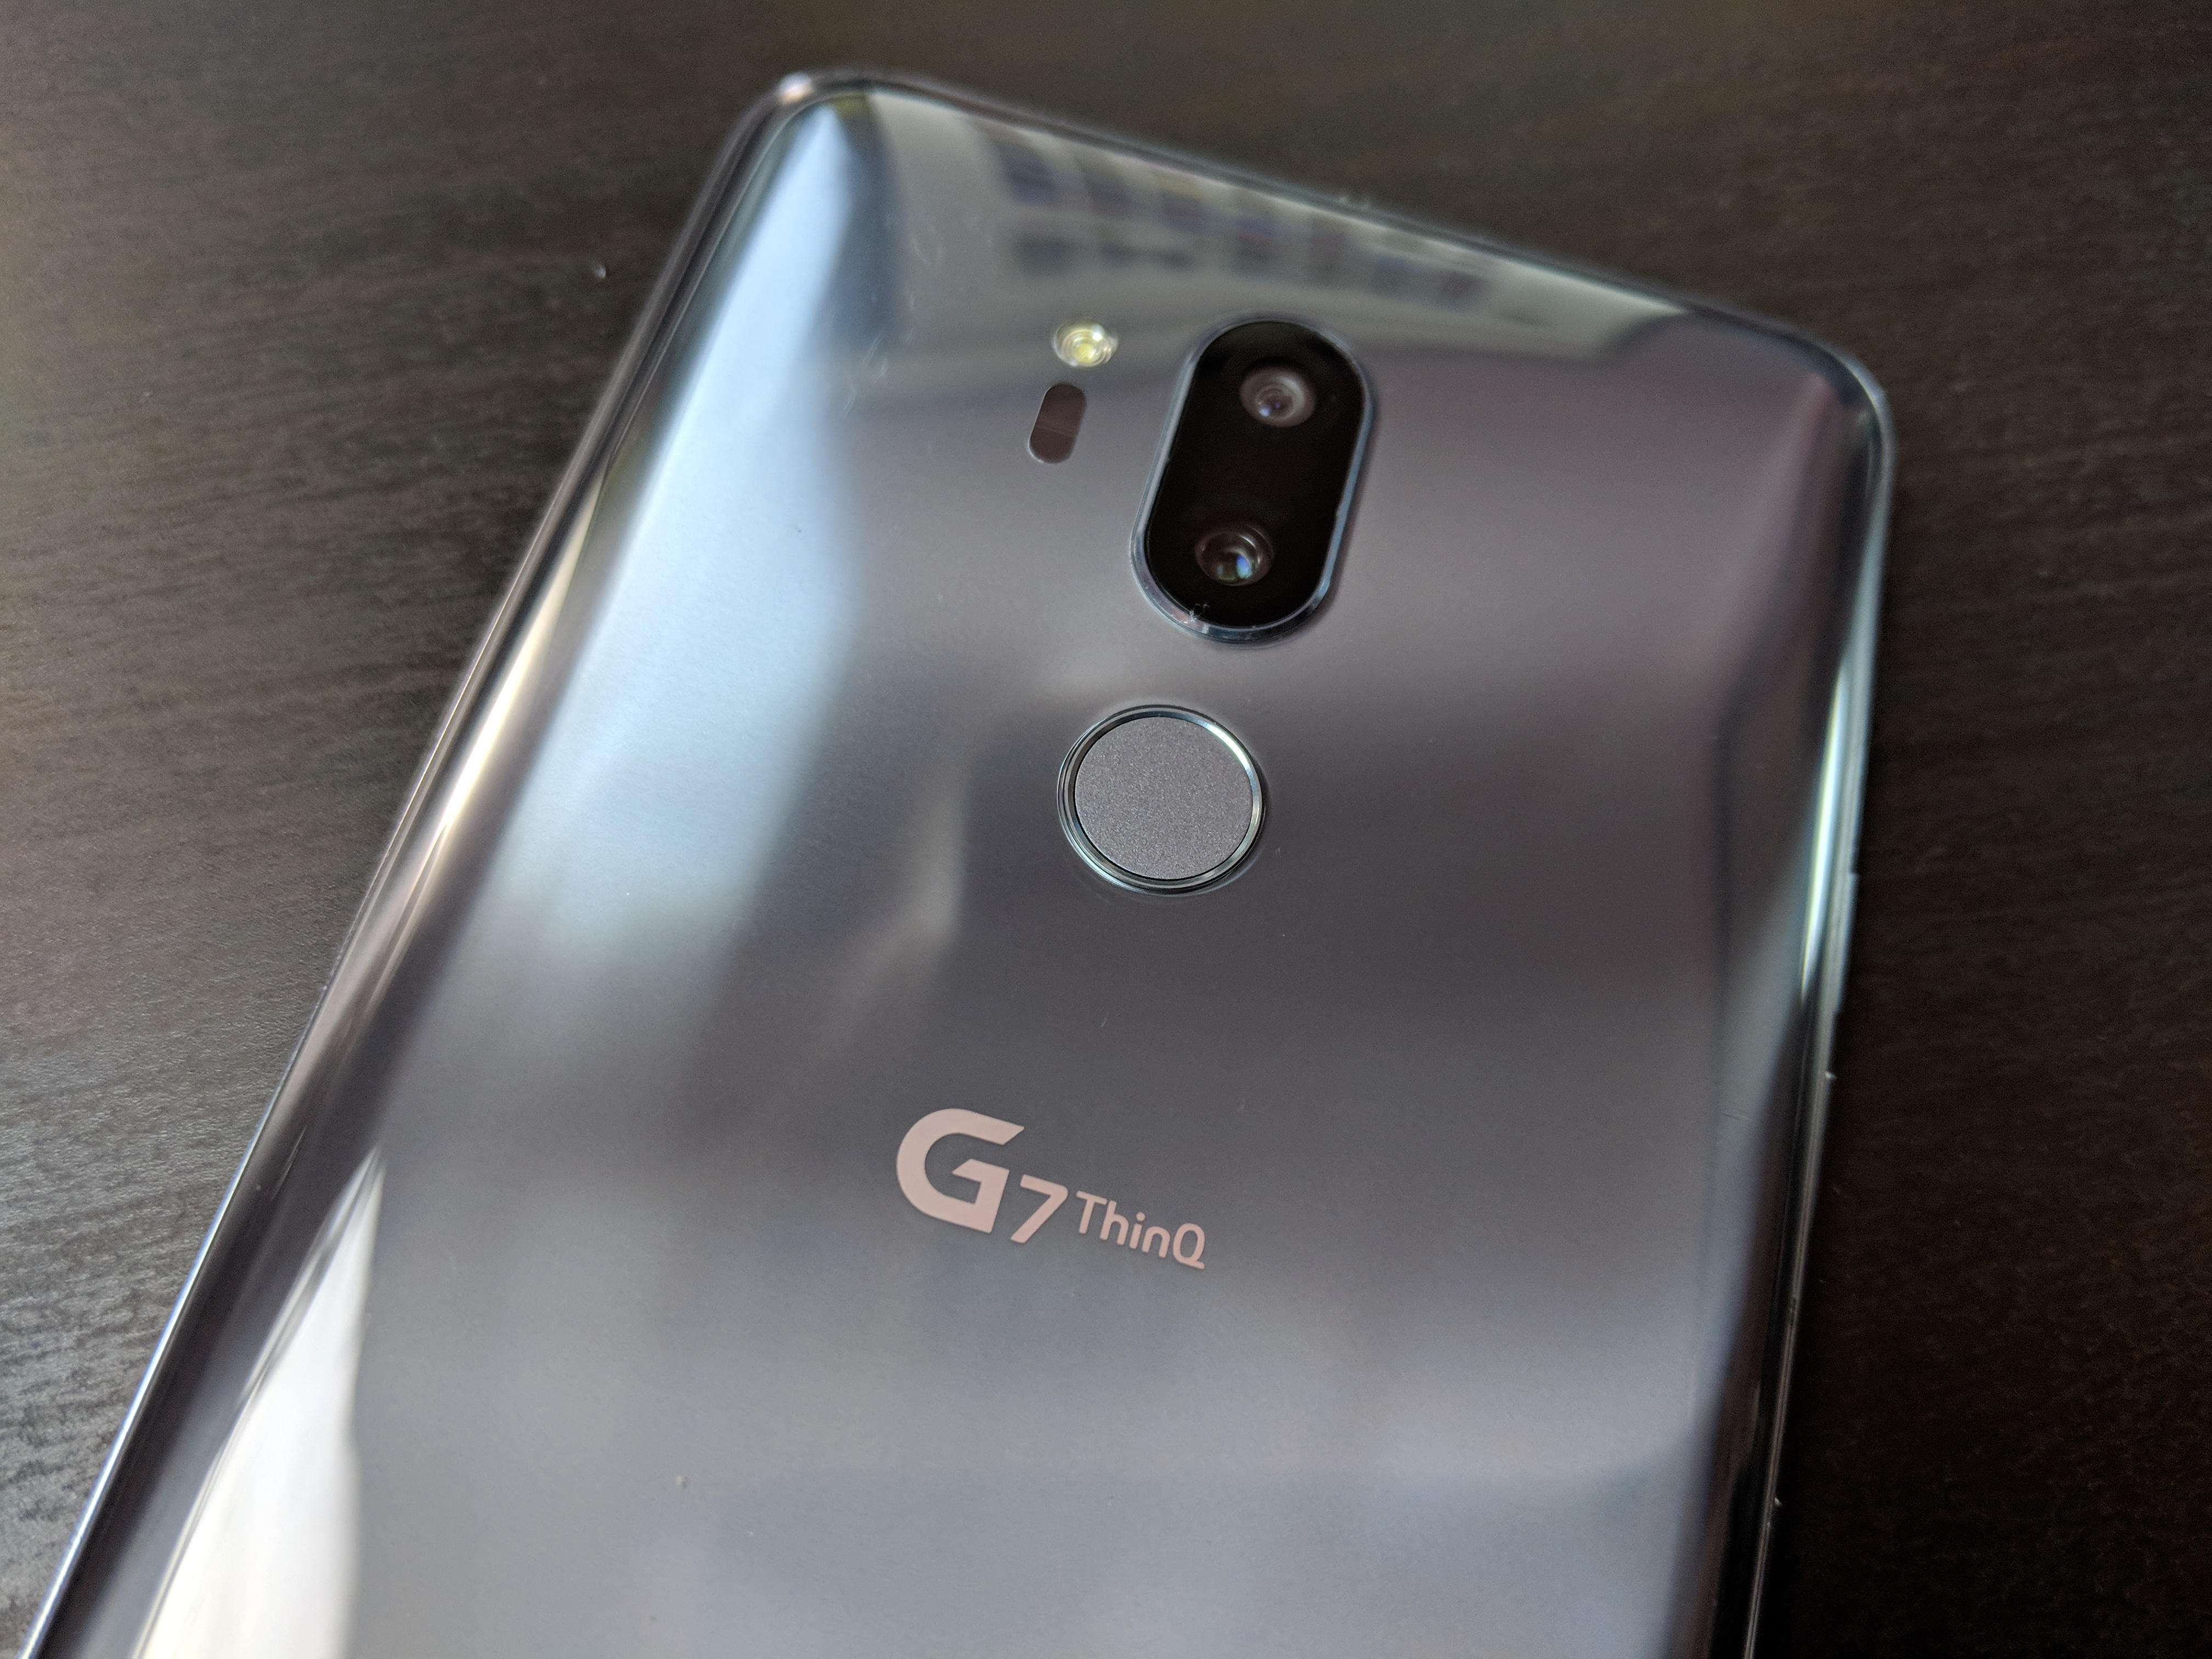 Use these 7 tips to get started with the LG G7 ThinQ